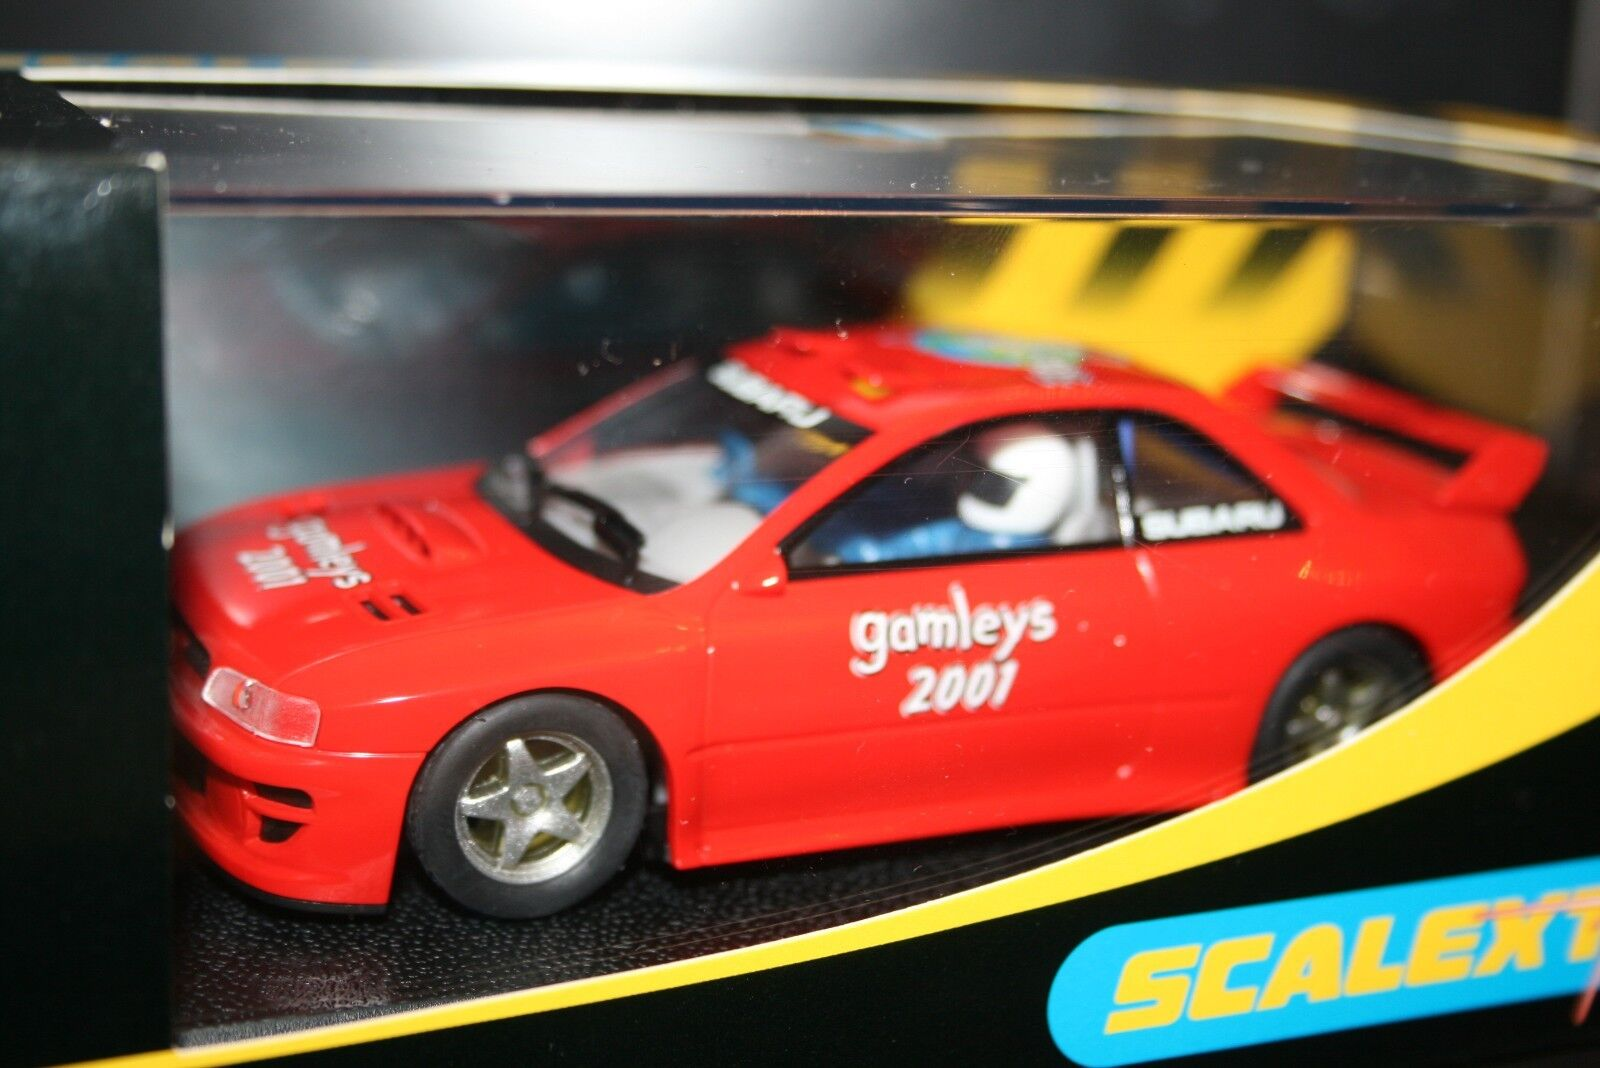 BOXED NEW SCALEXTRIC SUBARU IMPREZA C2387 LTD EDITION GAMELY'S SPECIAL EDITION